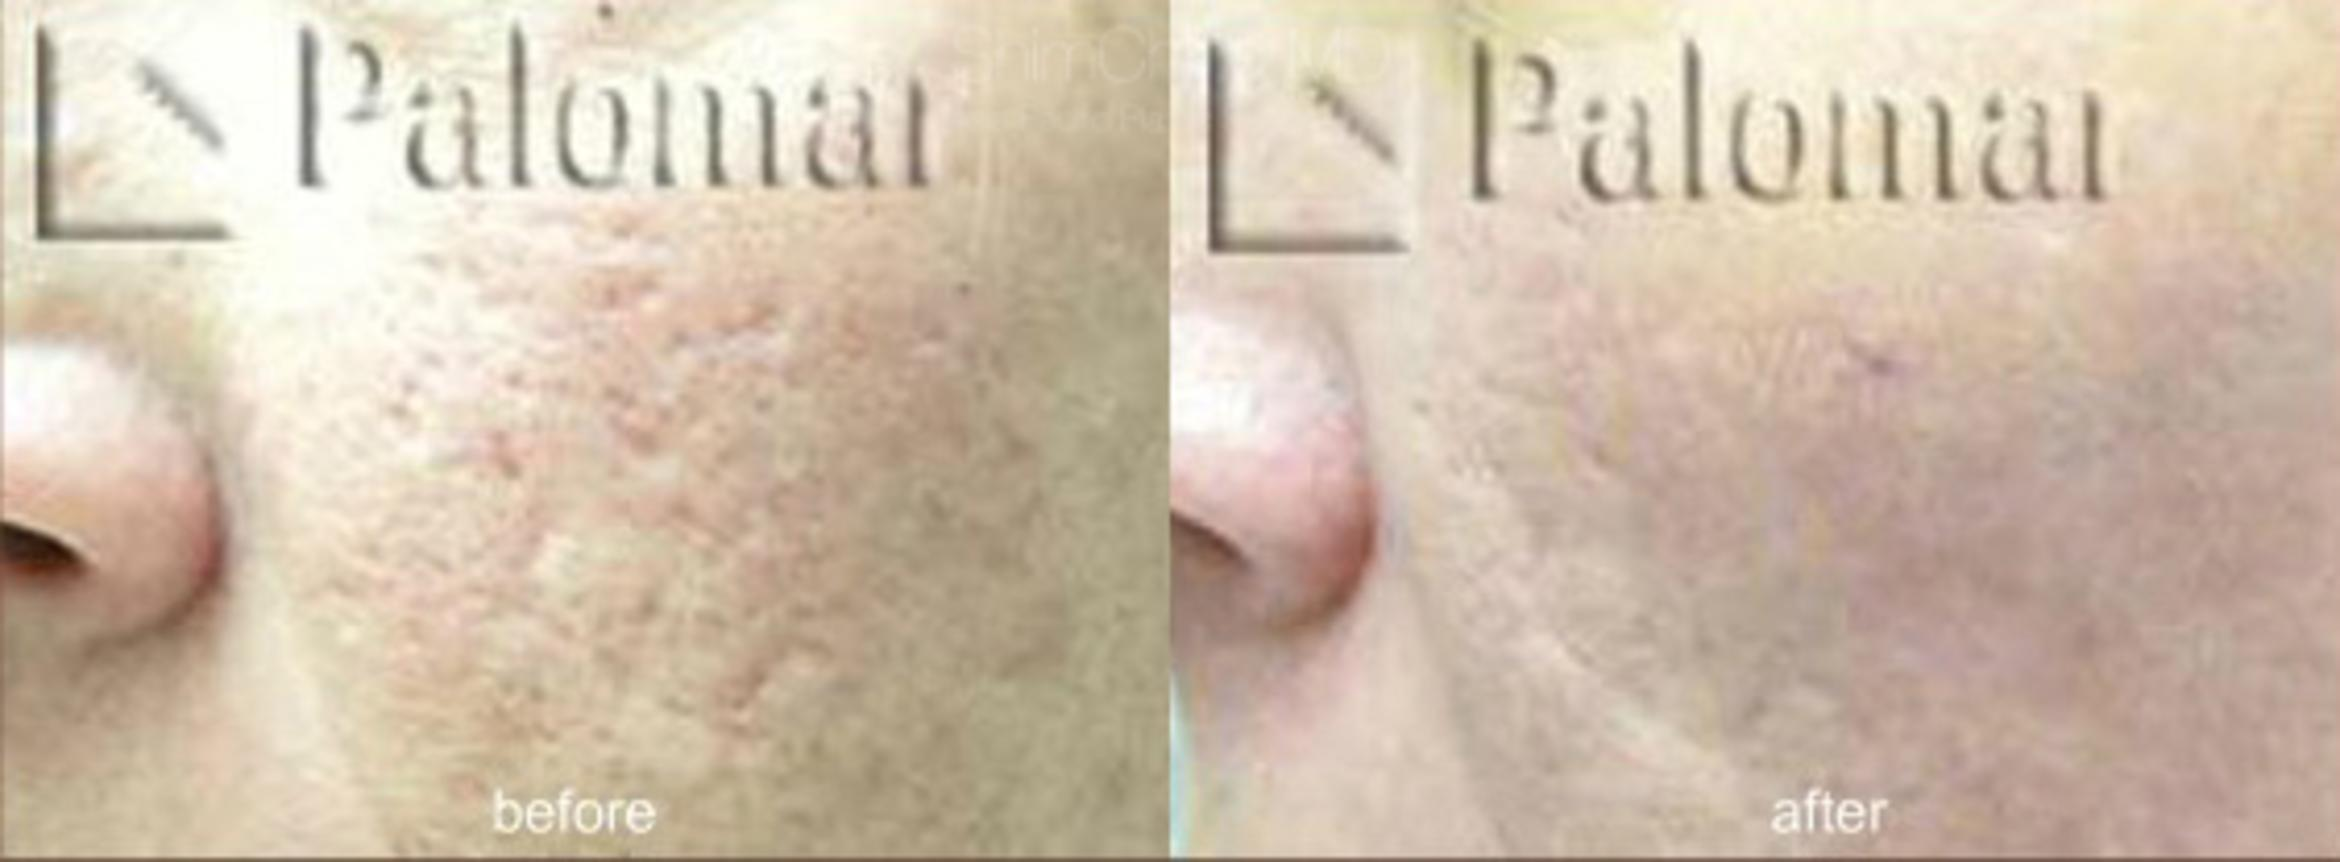 Laser Resurfacing Case 142 Before & After View #1 | Honolulu, HI | Shim Ching, MD: Asia Pacific Plastic Surgery